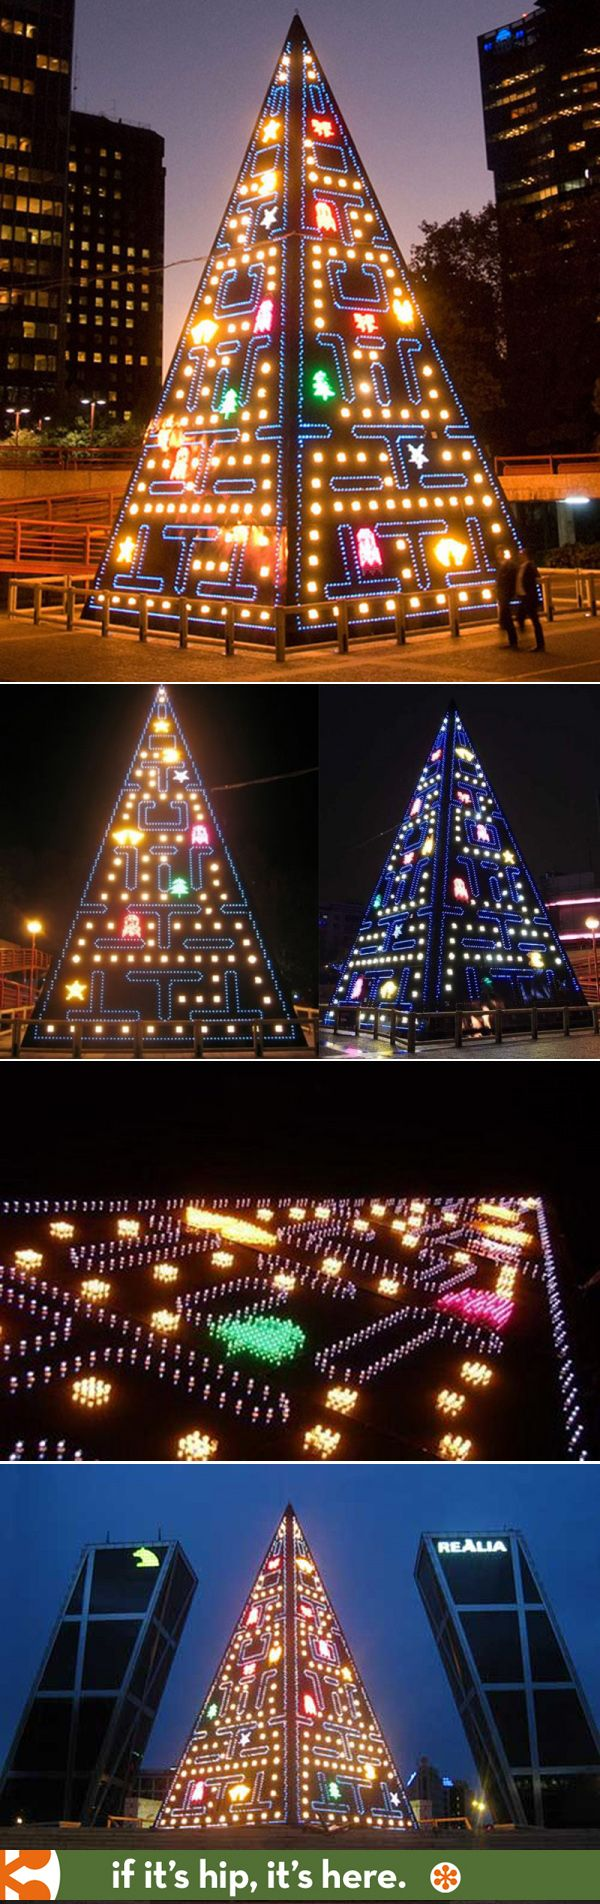 Animated Led Pac Man Christmas Tree In Spain